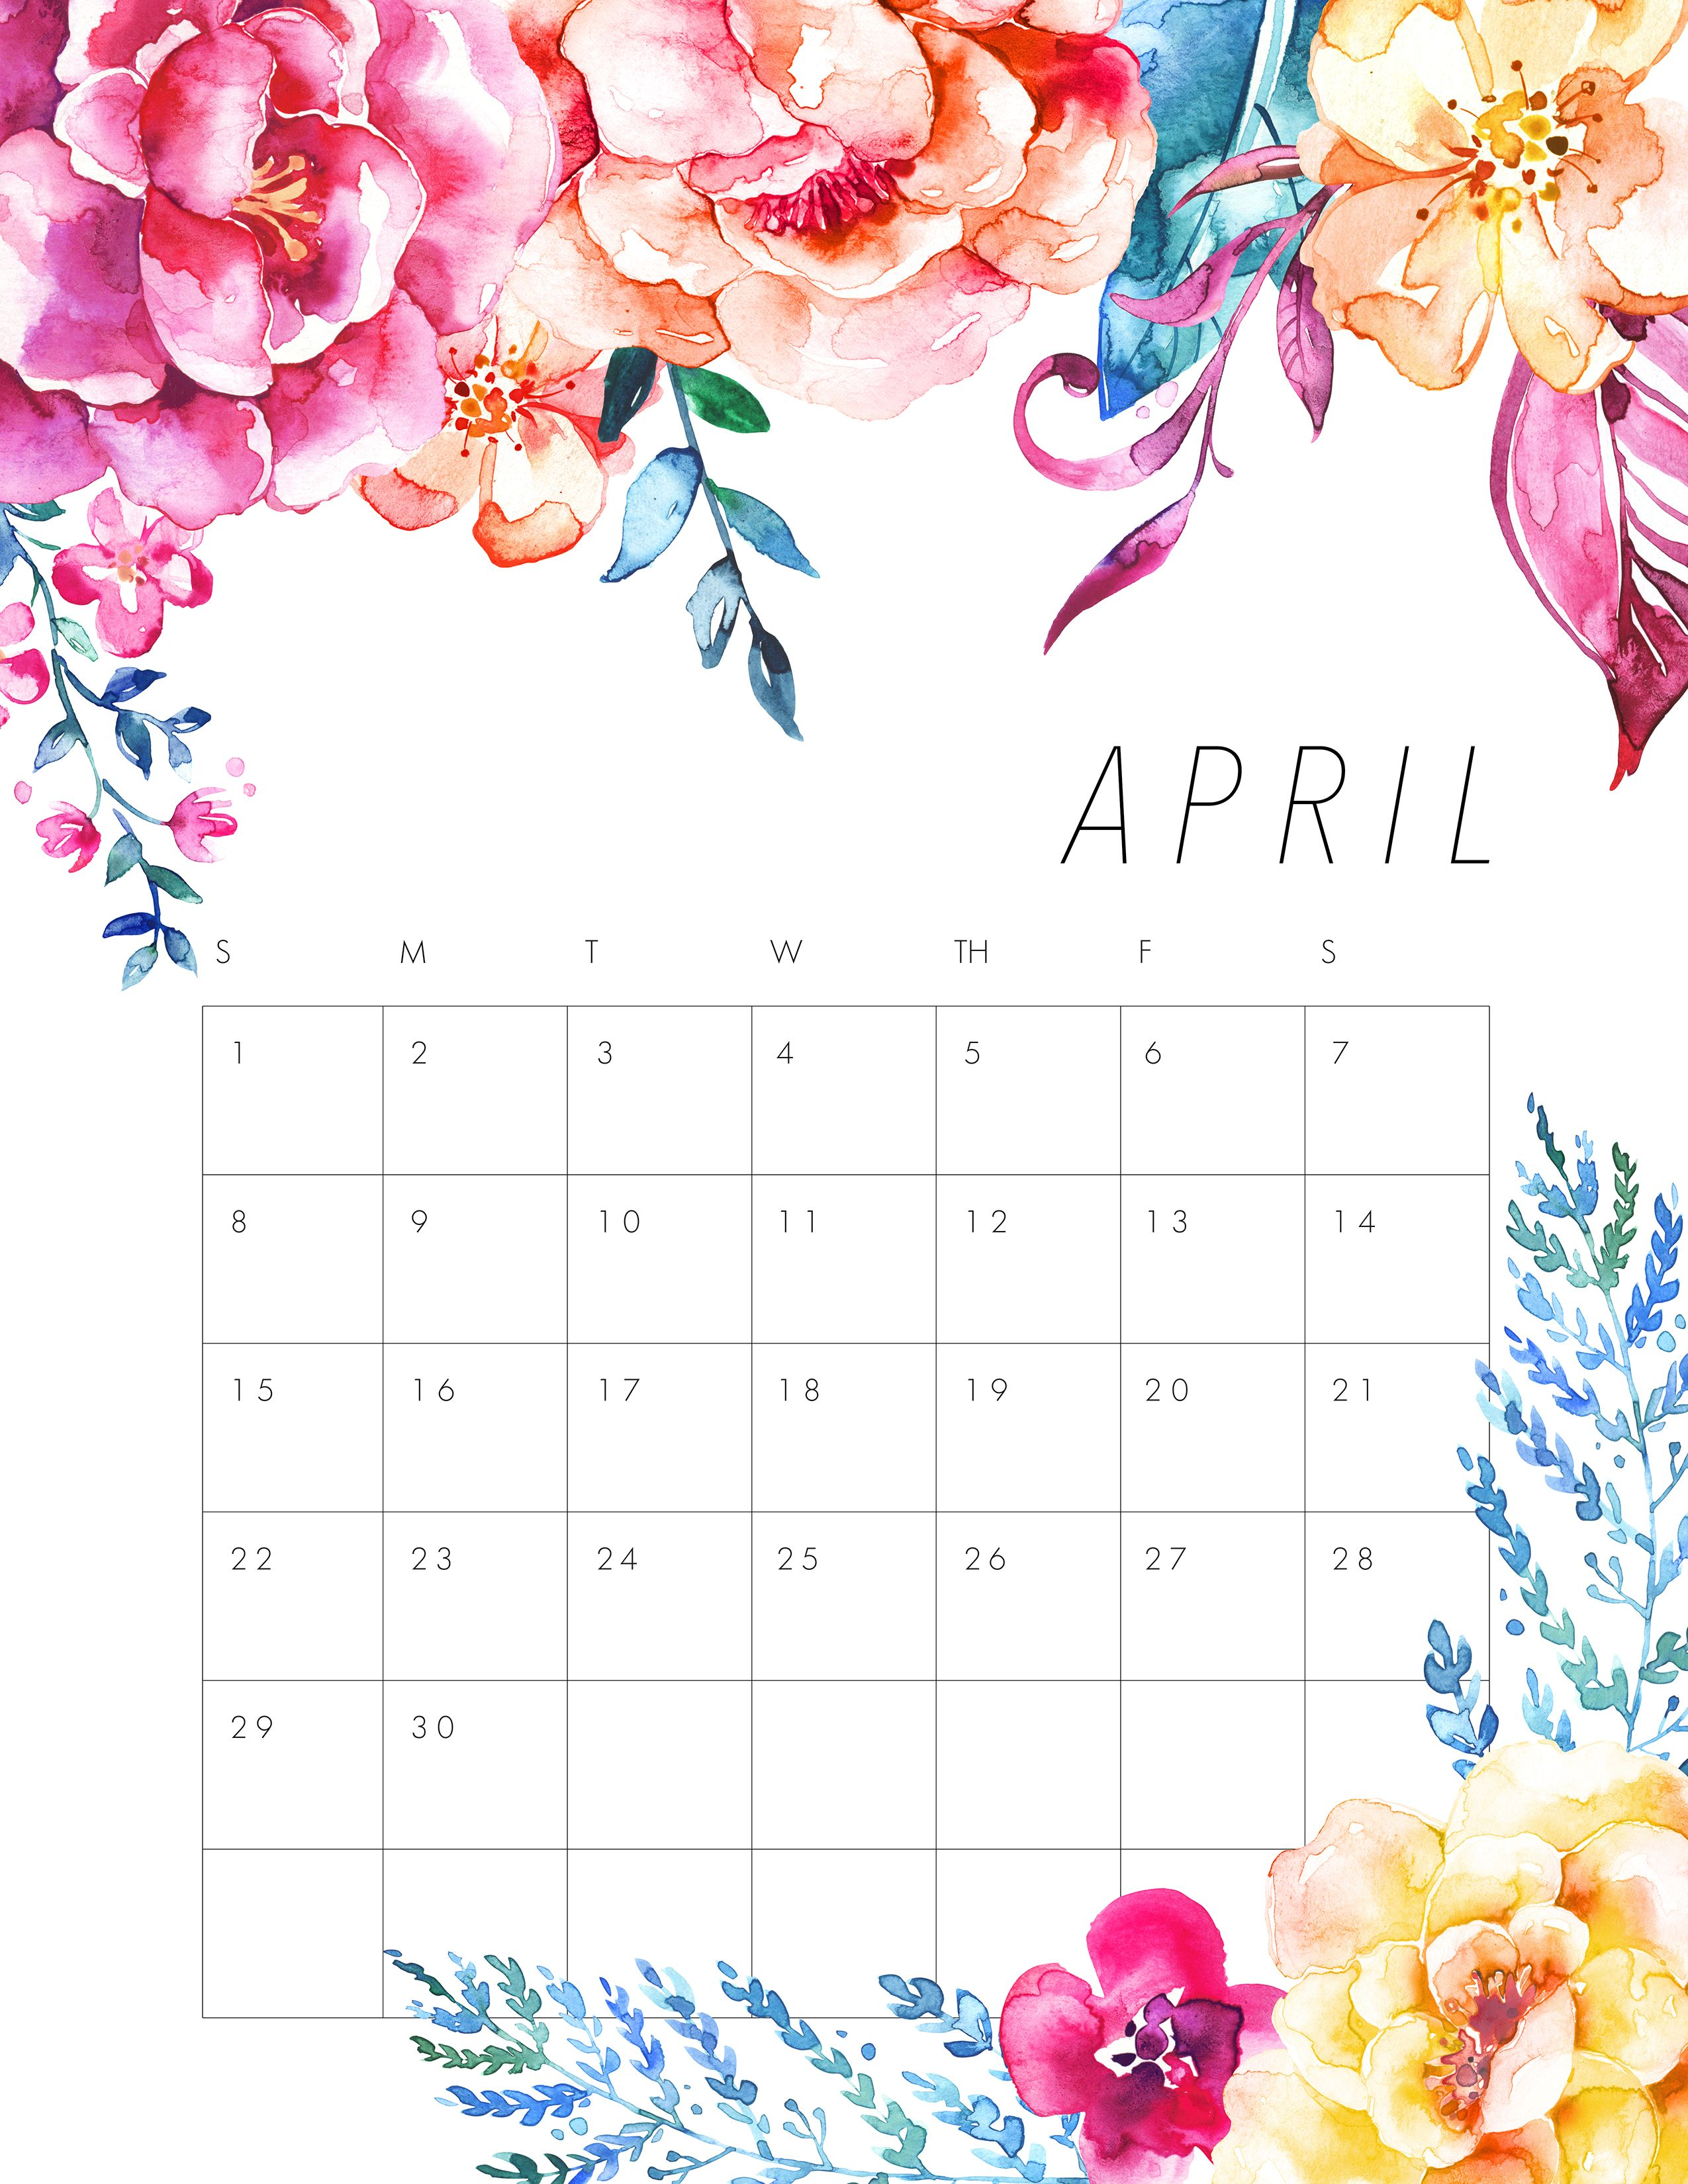 Tcm jpg projects to. Calendar clipart april 2017